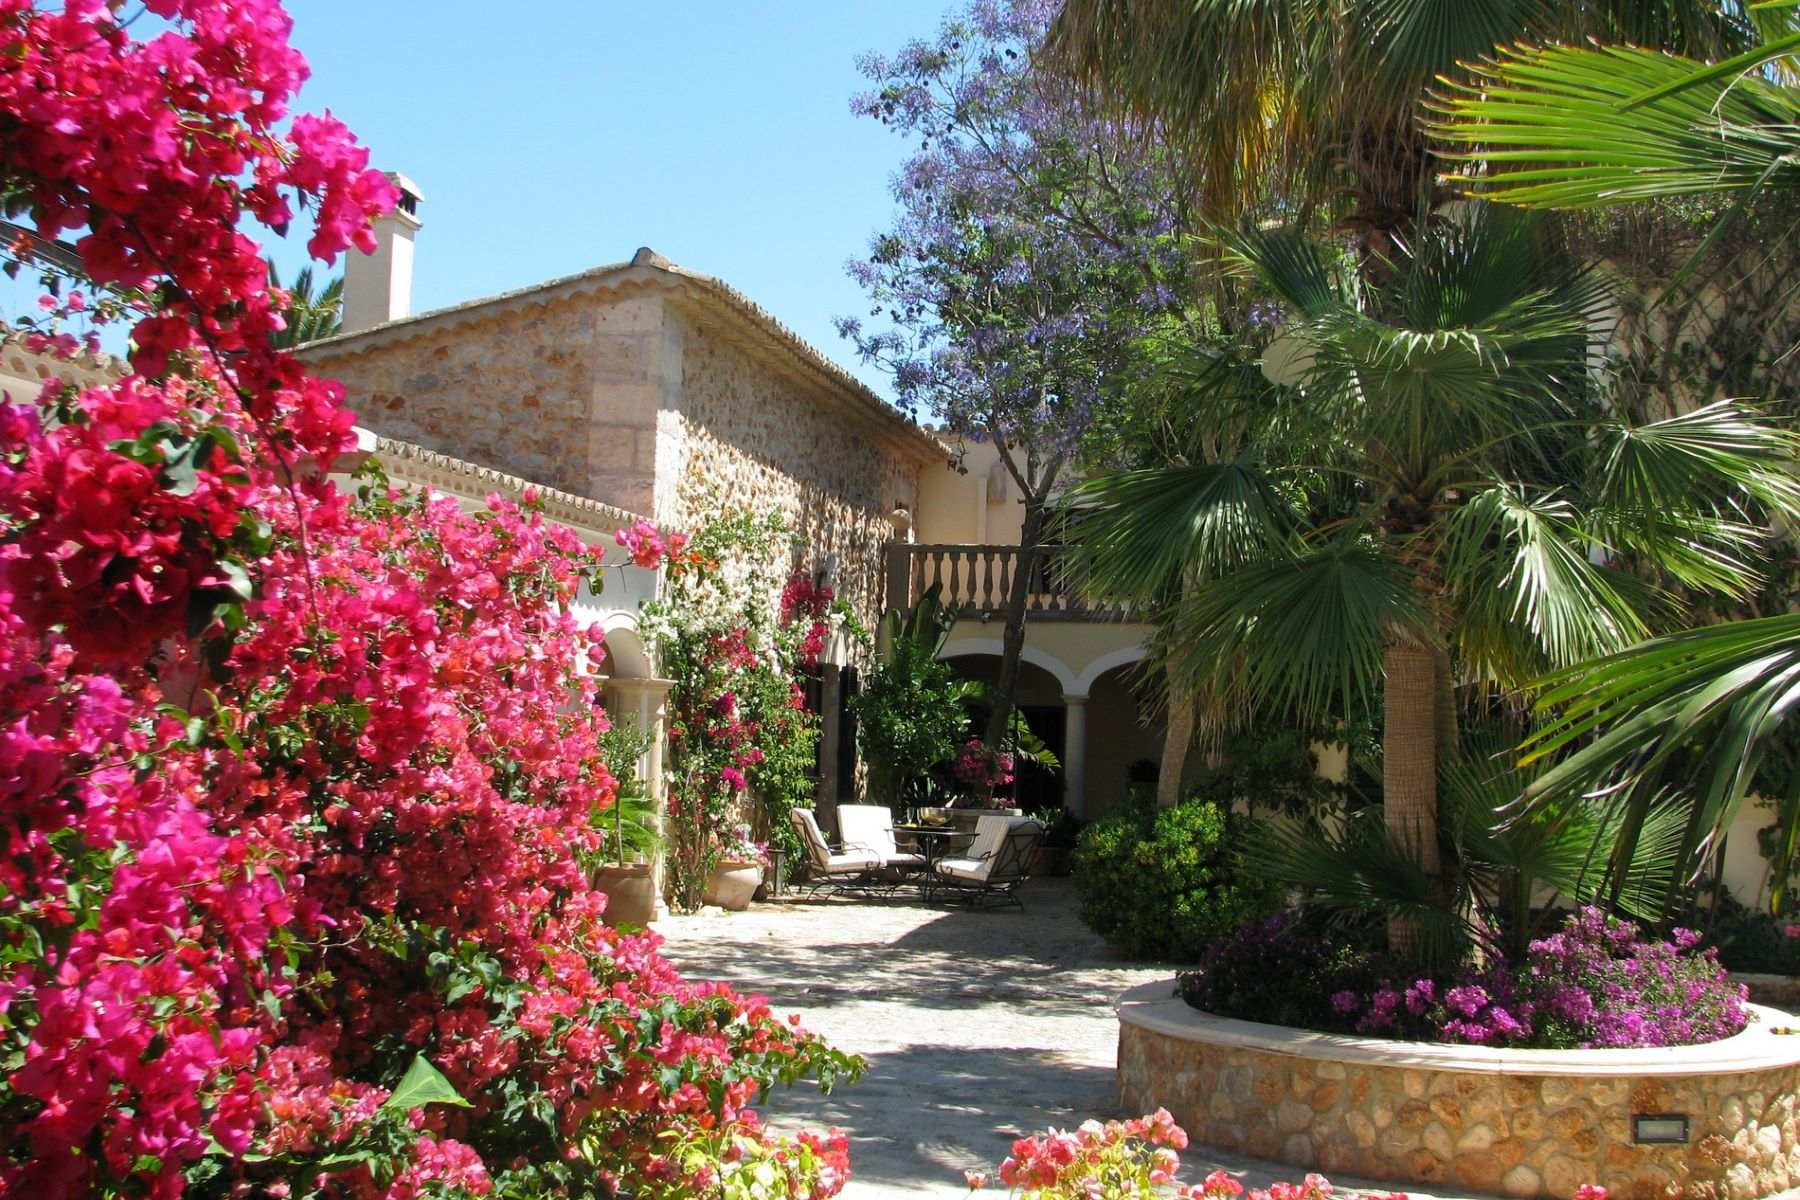 Single Family Home for Sale at Luxury Finca with beautiful views for sale Binissalem, Mallorca, Spain